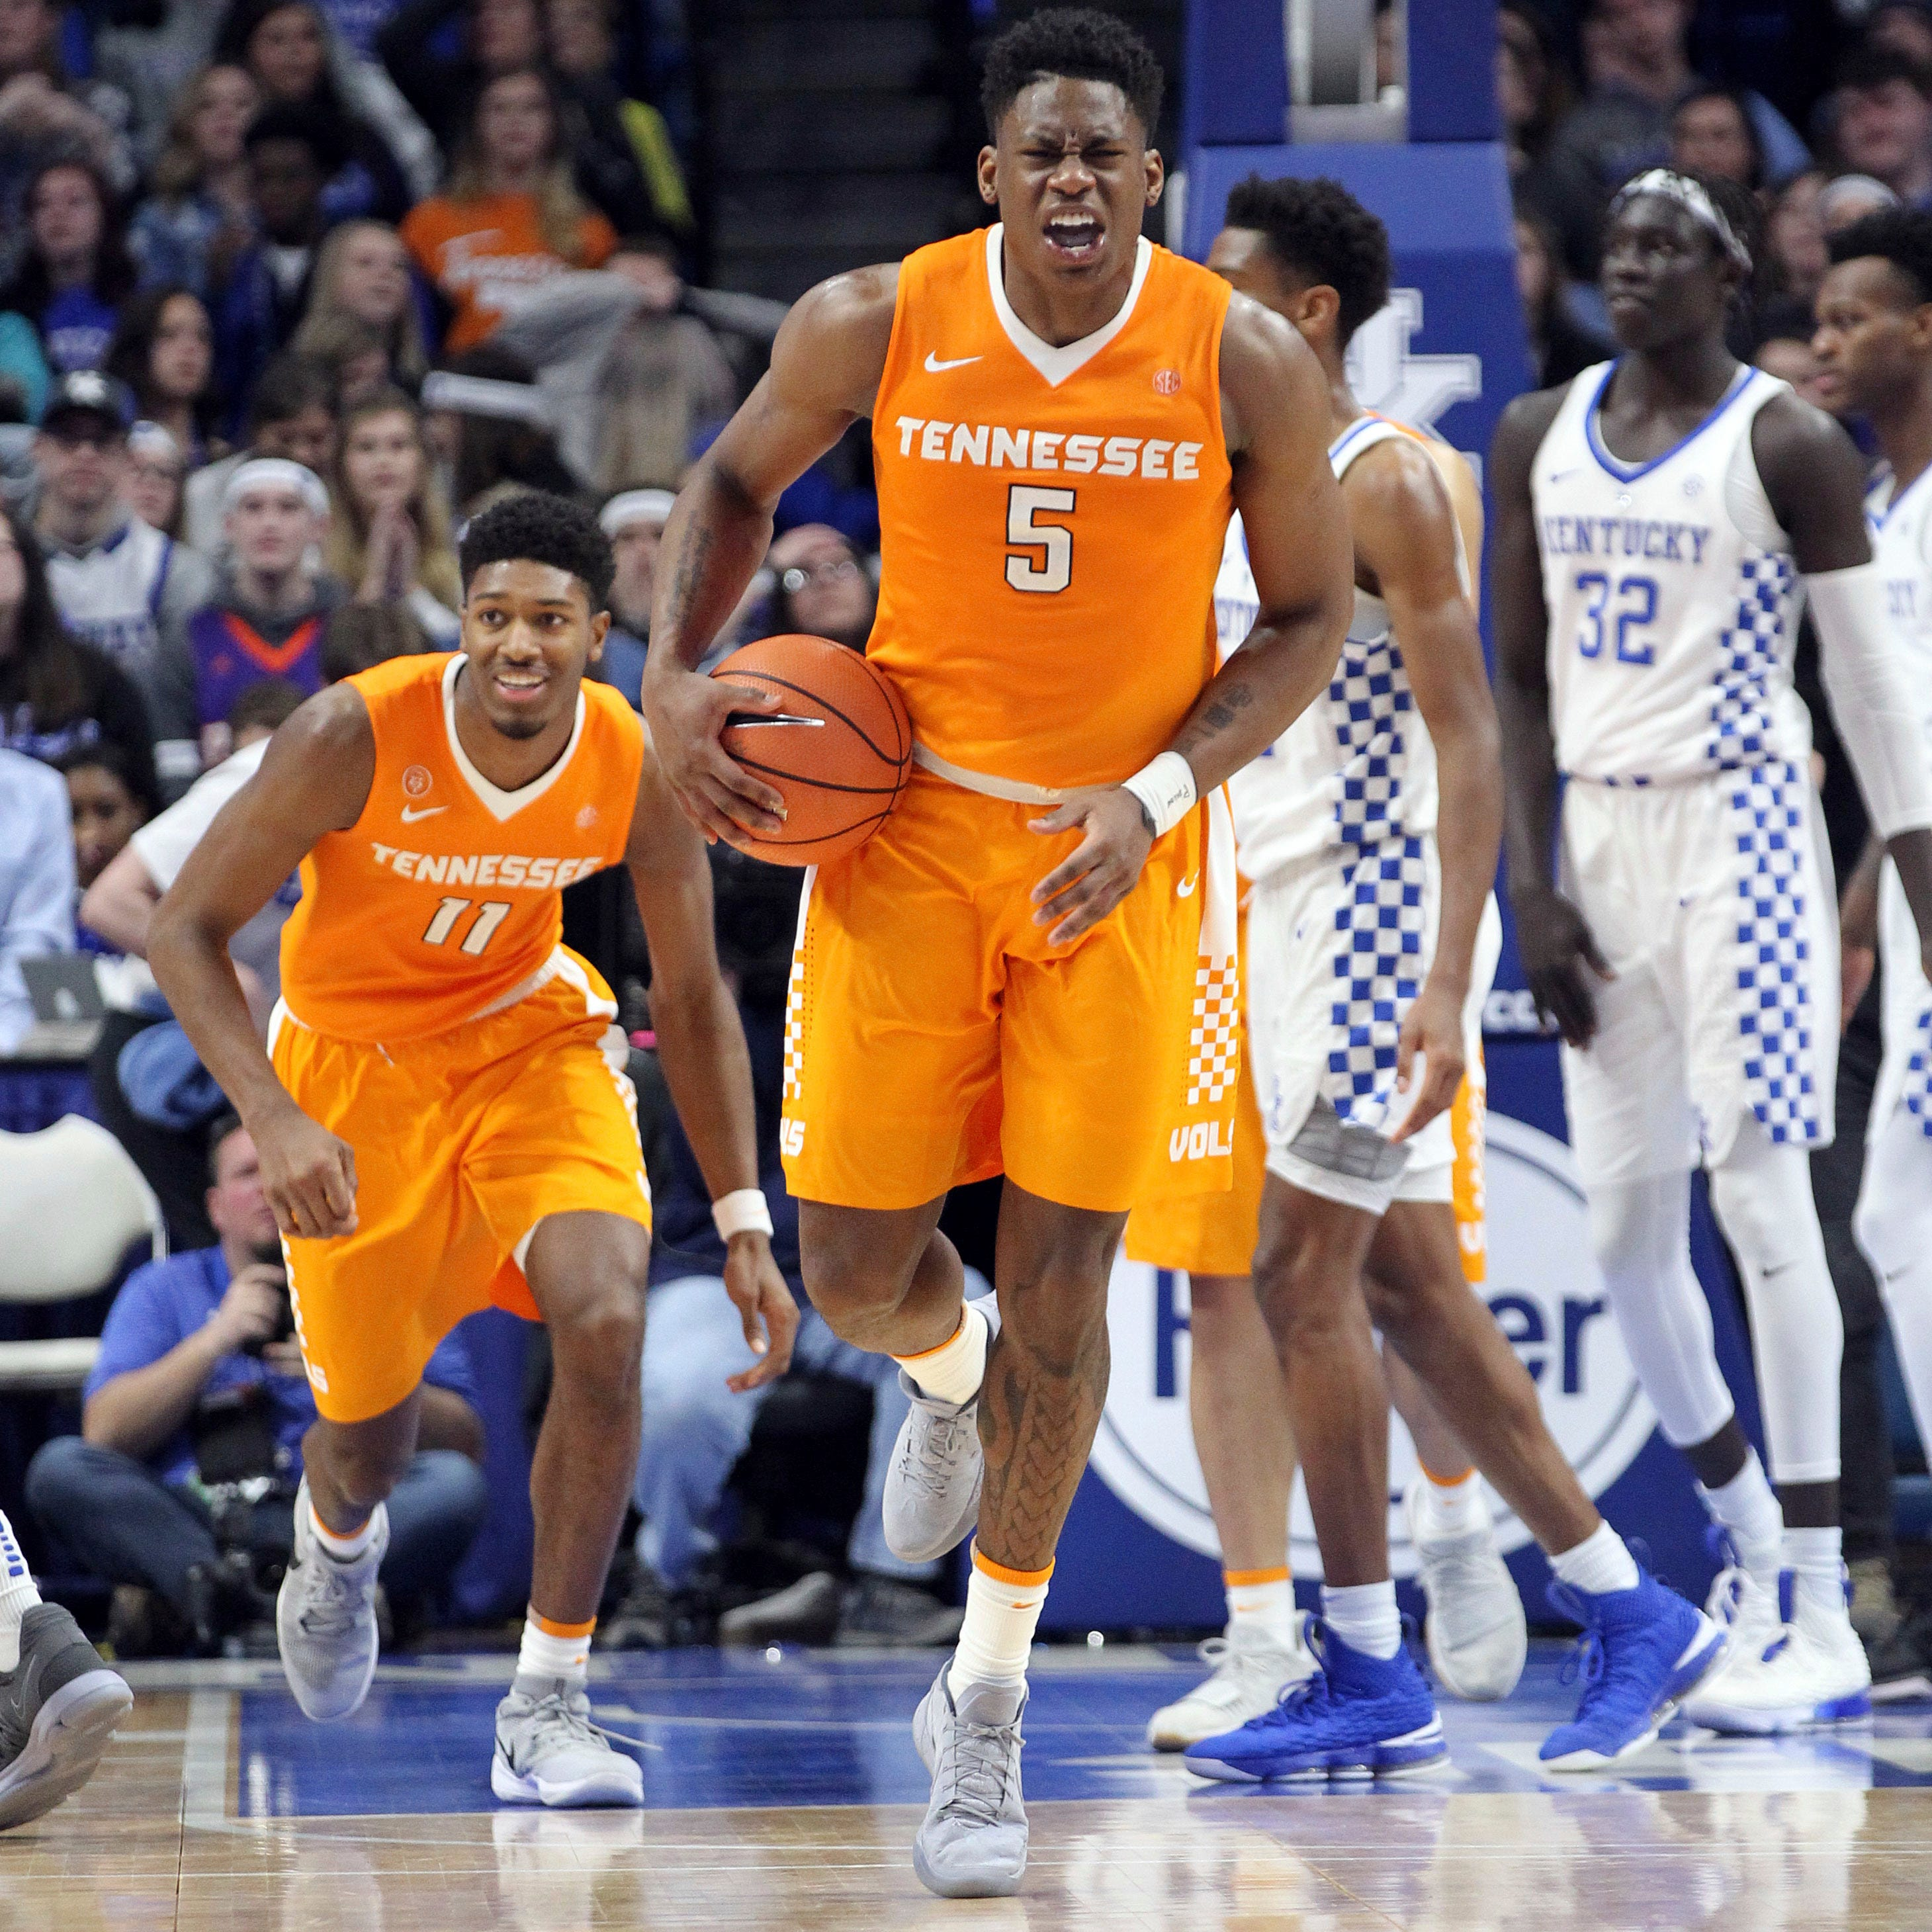 Tennessee vs Kentucky basketball 'not just another one' for No. 1 UT Vols